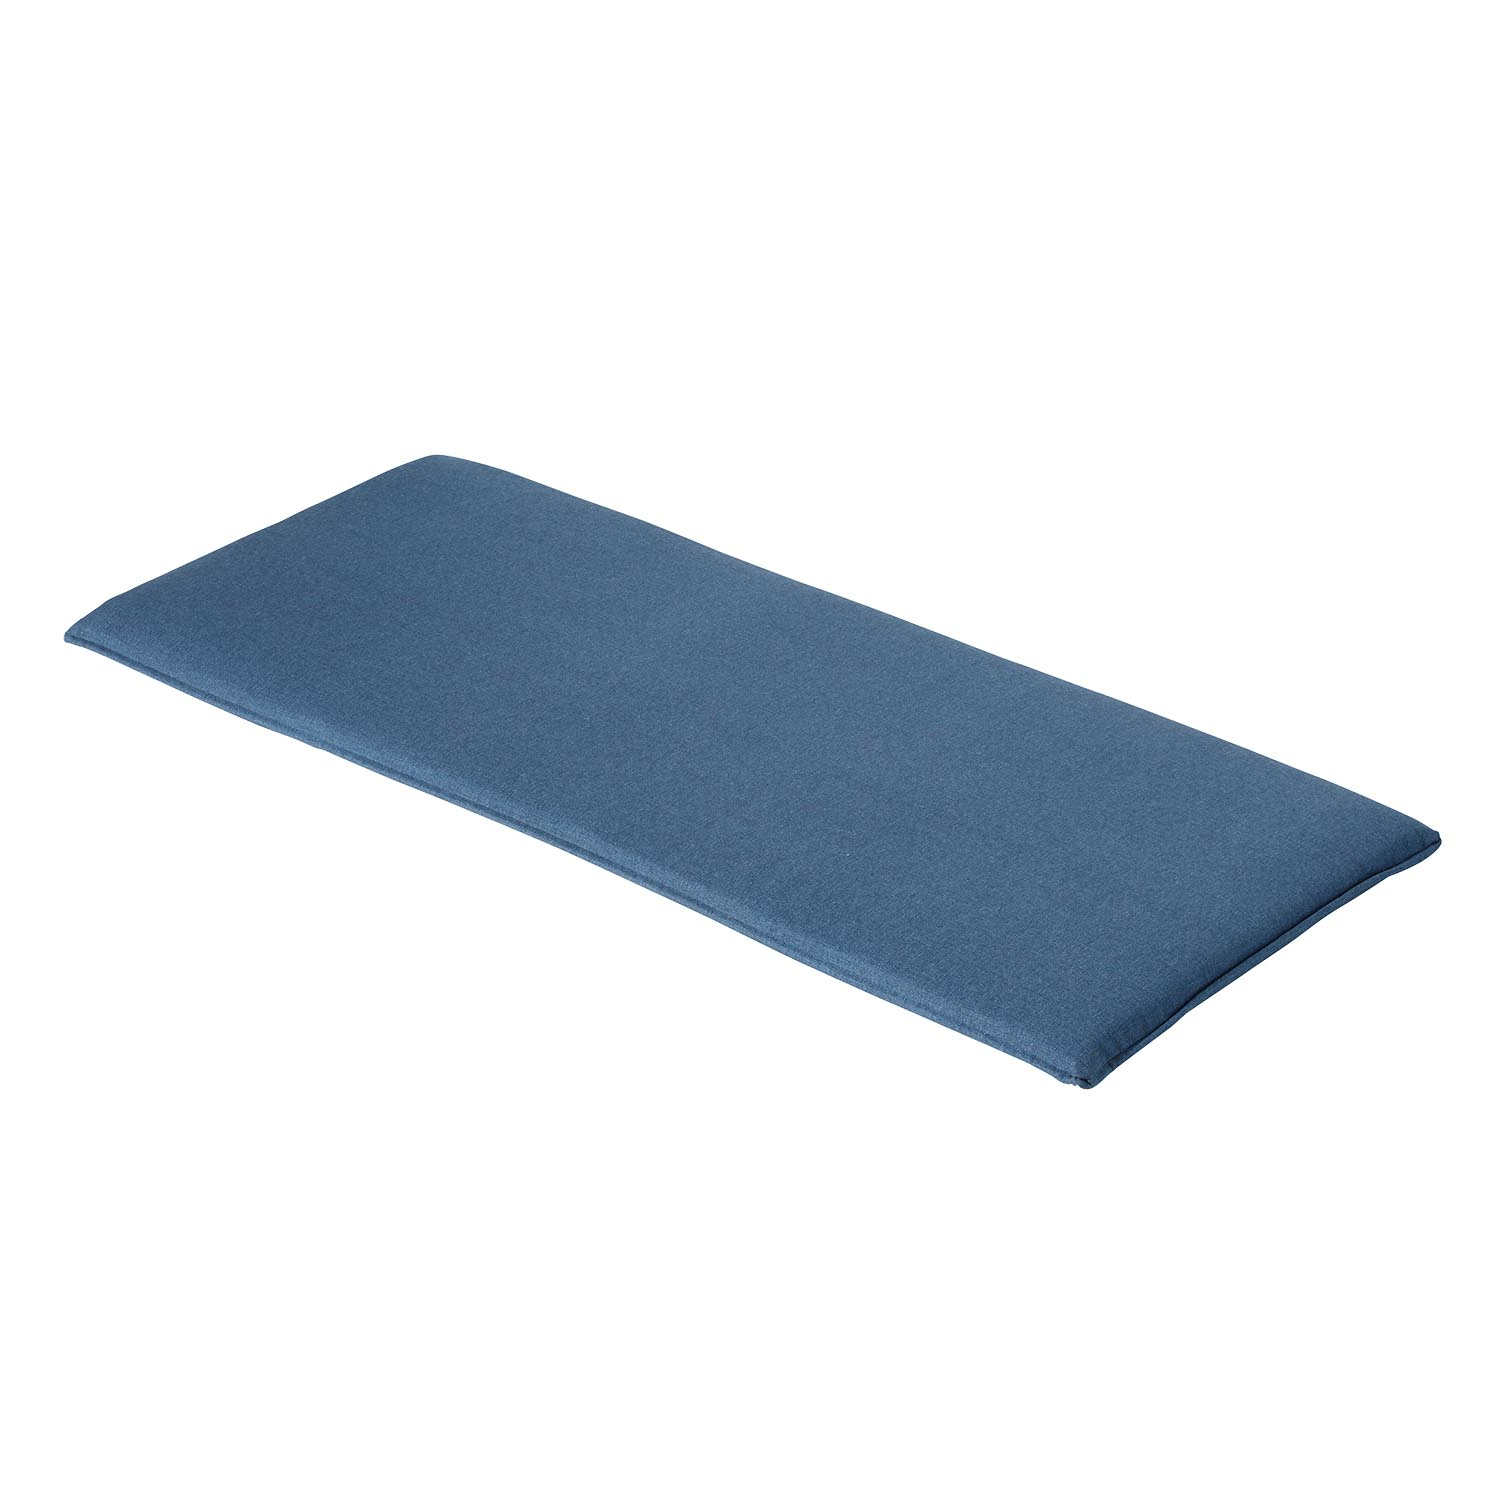 Bankkussen 170cm - Outdoor panama Oxford blue